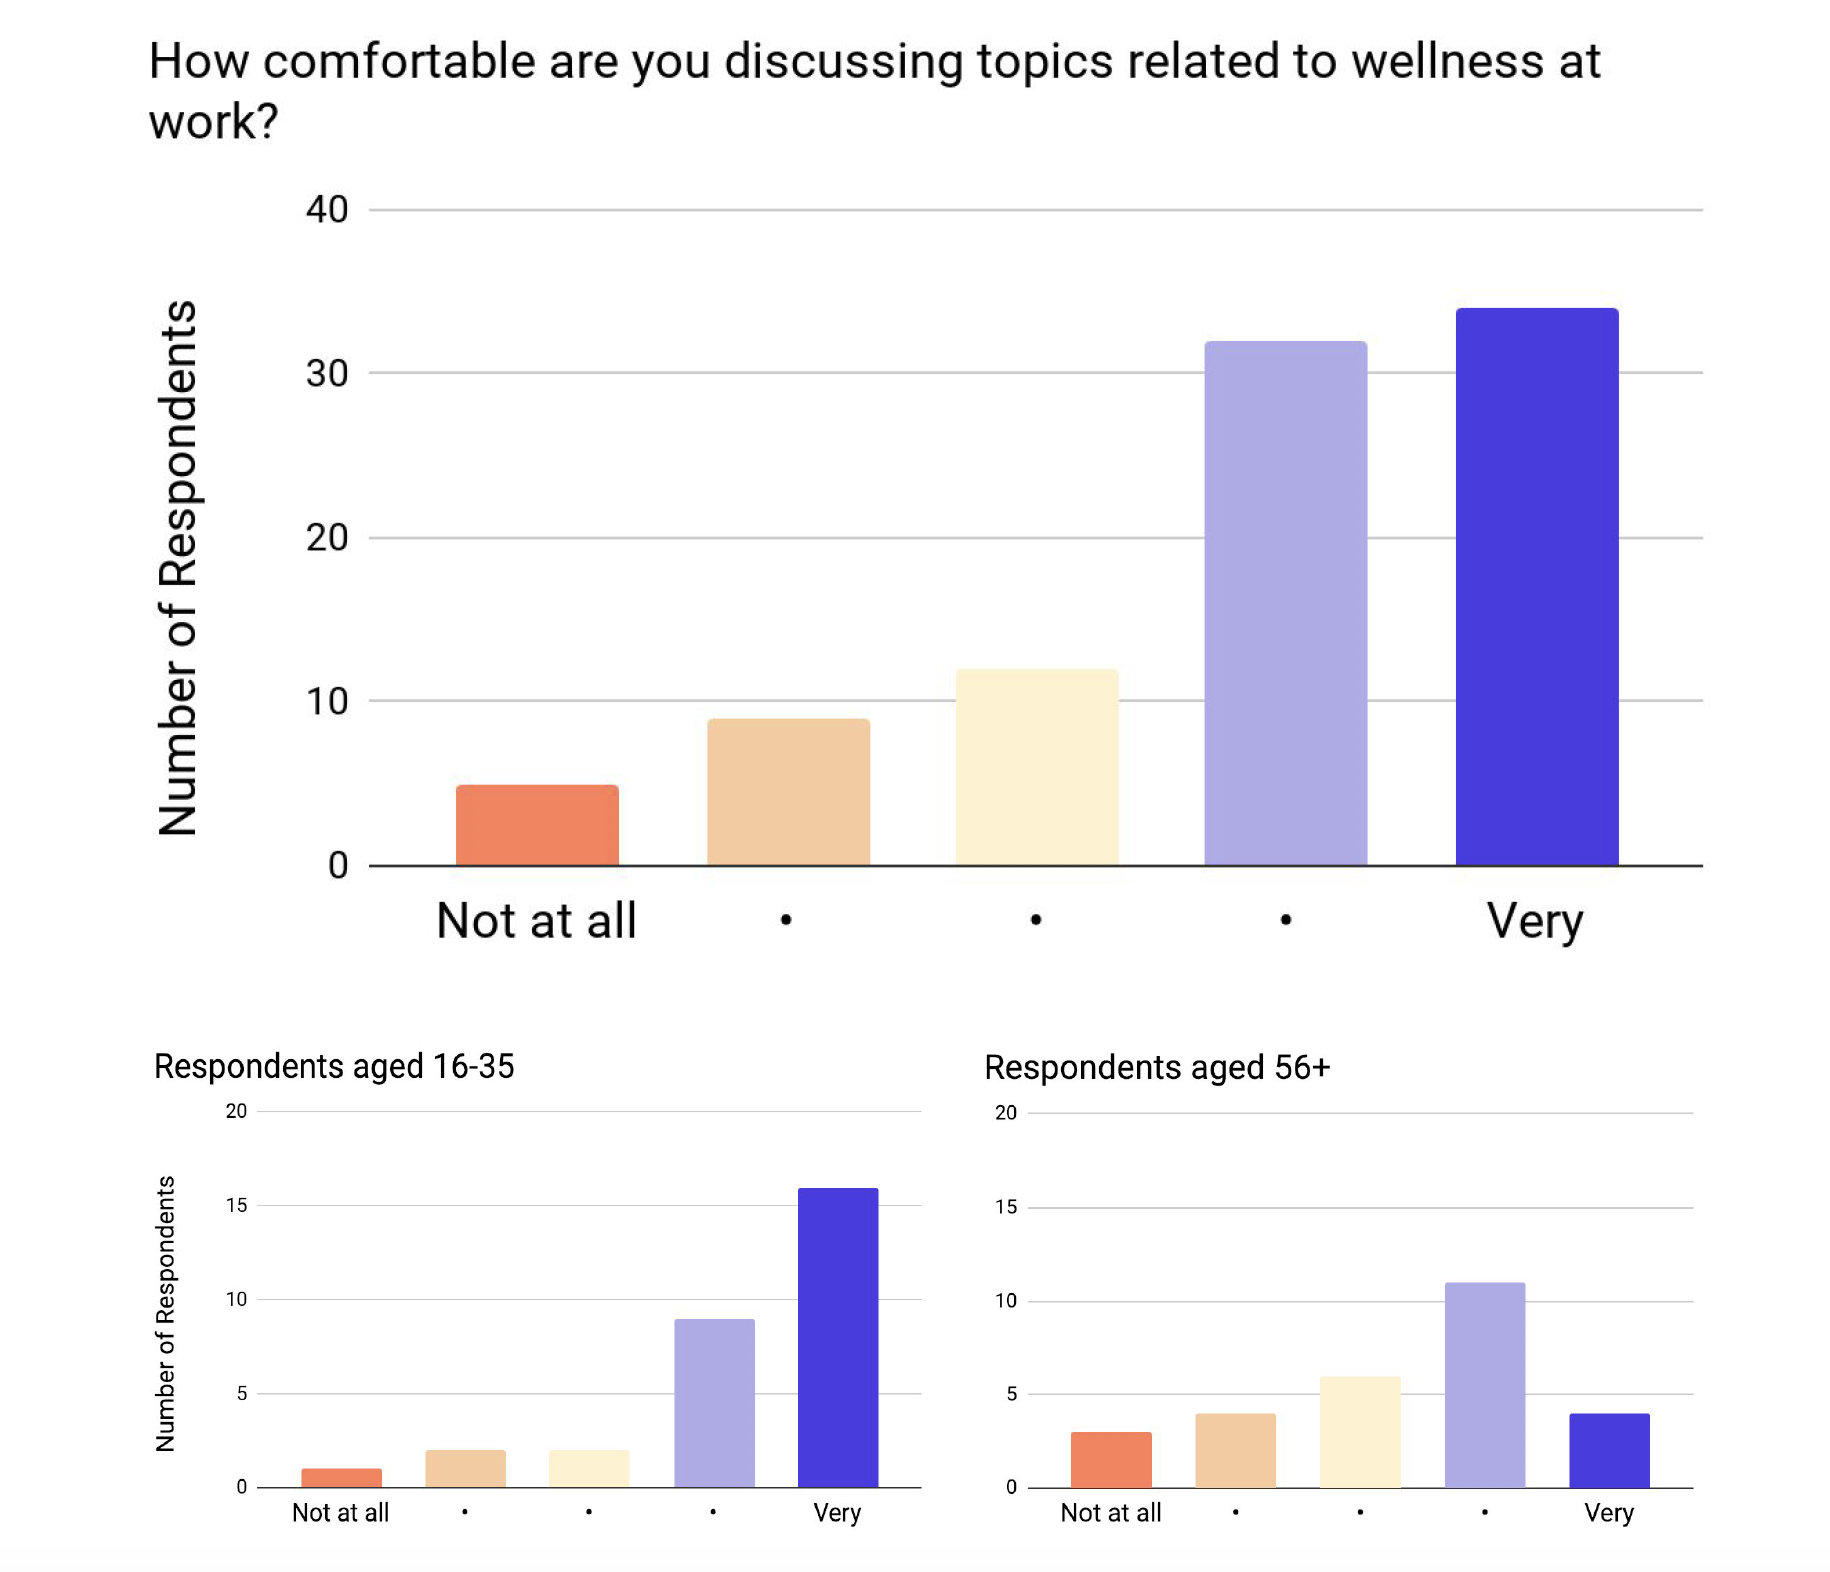 We found that younger respondents are more comfortable discussing wellness at work when compared to respondents age 56+.